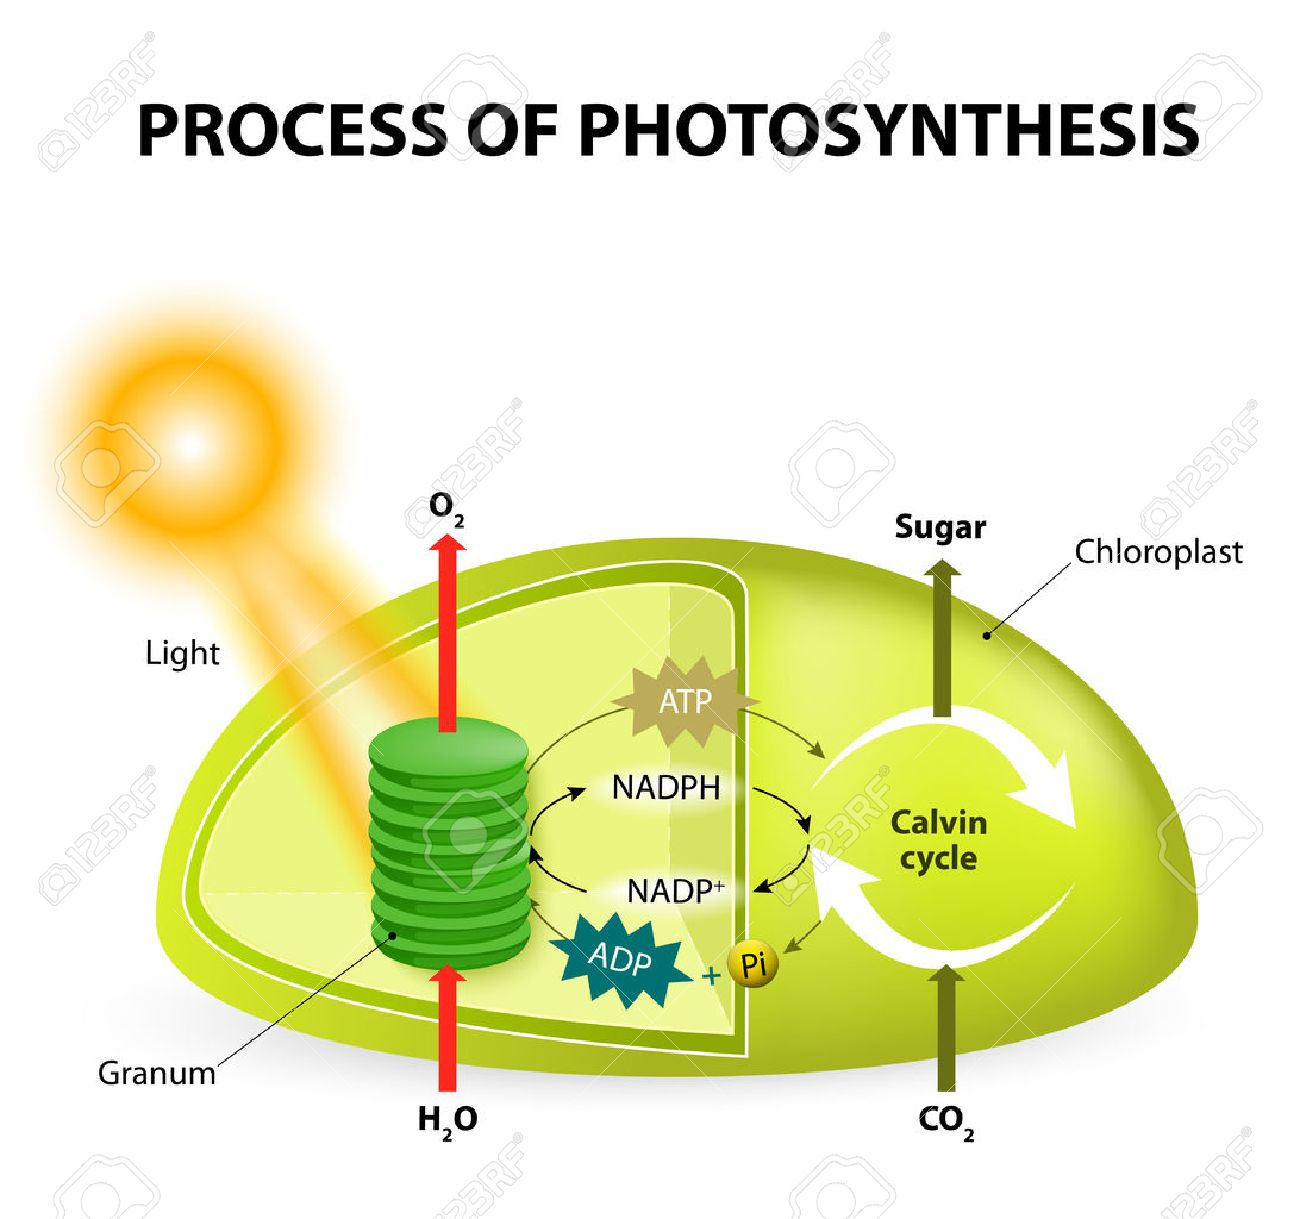 hight resolution of diagram of the process of photosynthesis showing the light reactions and the calvin